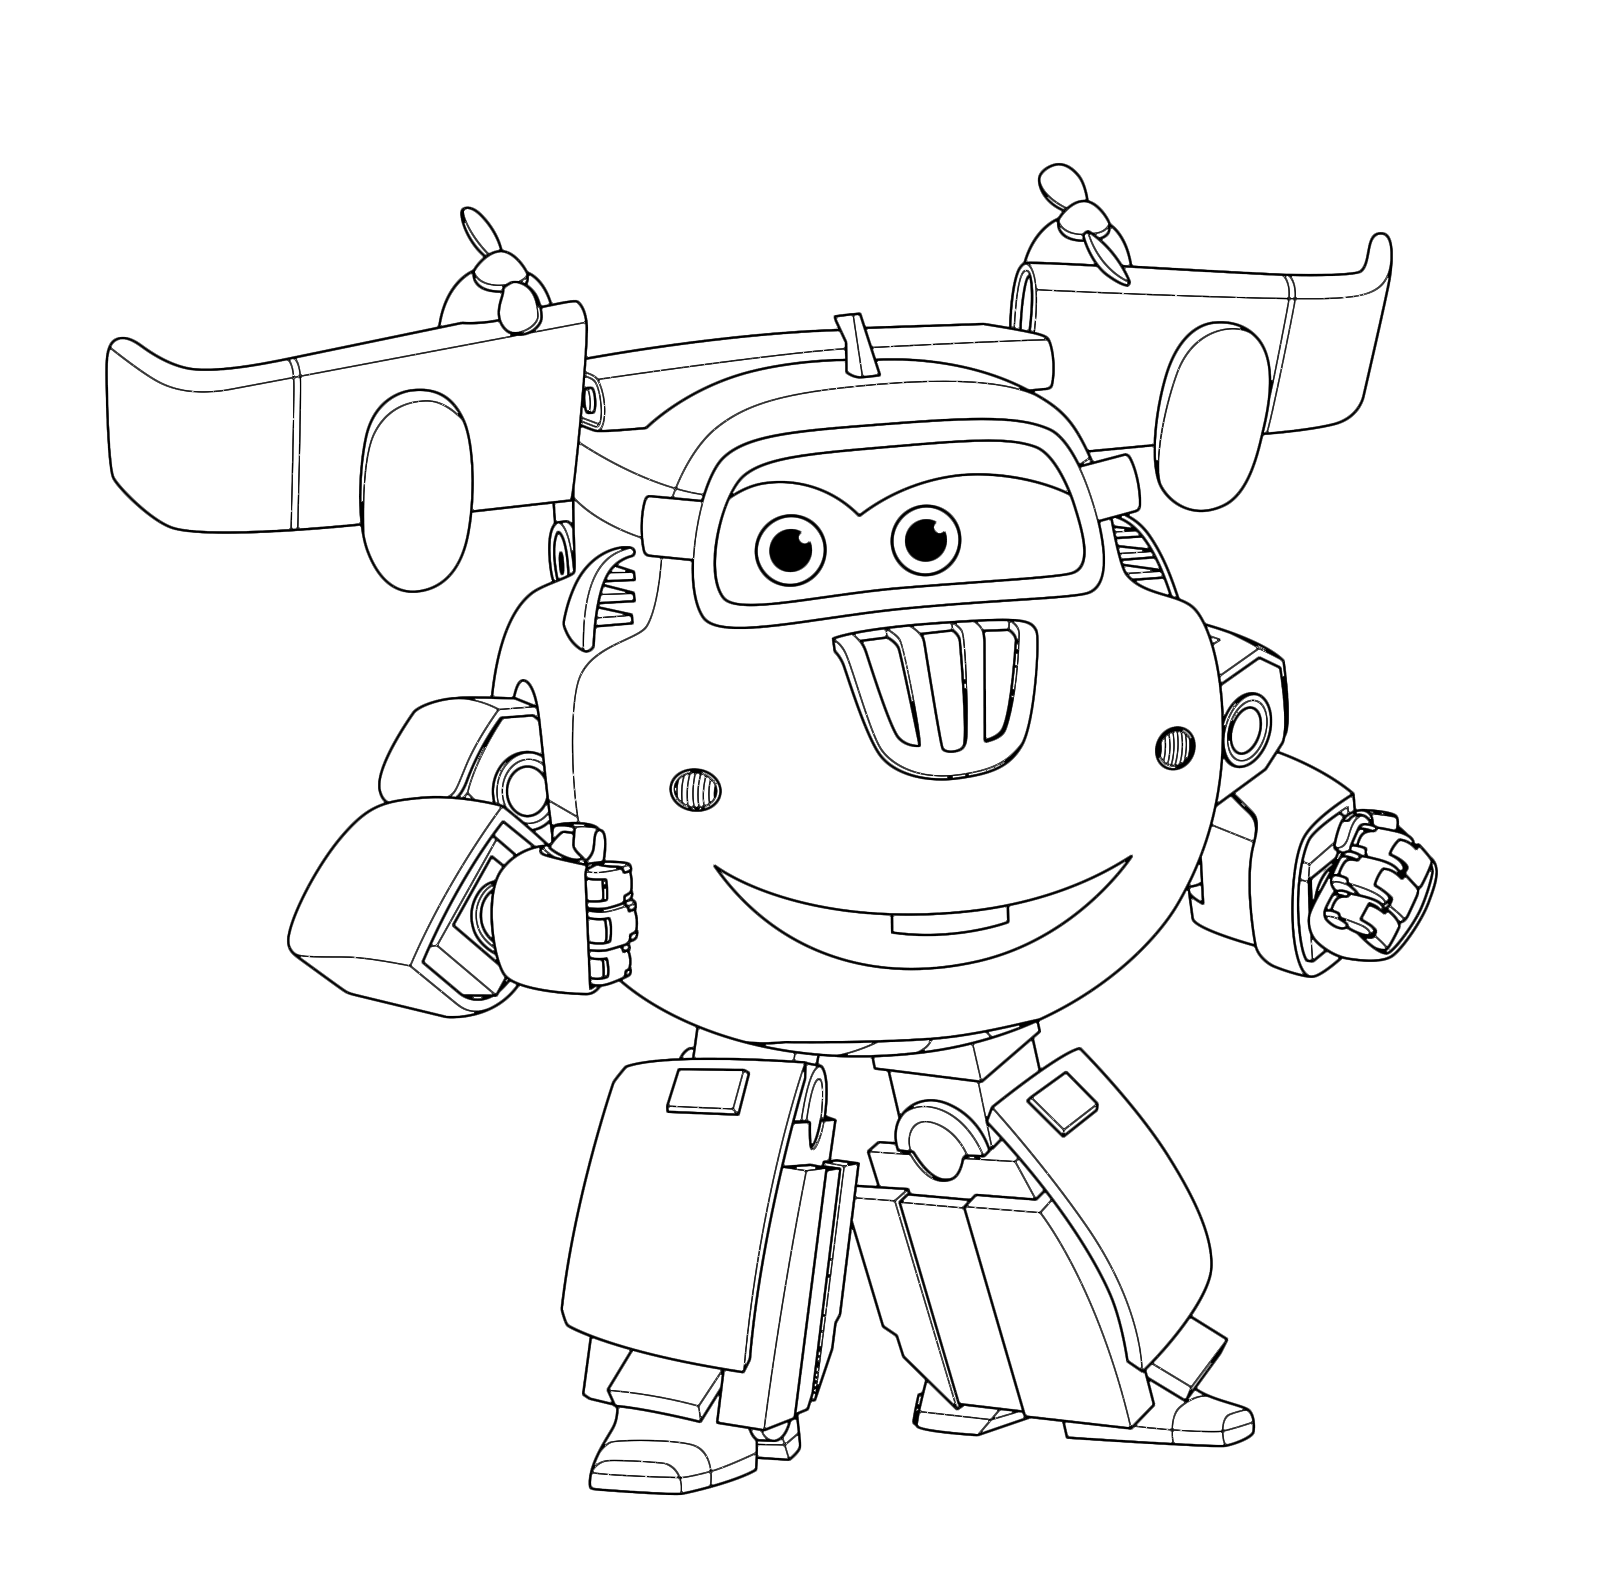 Super wings donnie pronto per aiutare jett for Disegni da colorare super wings